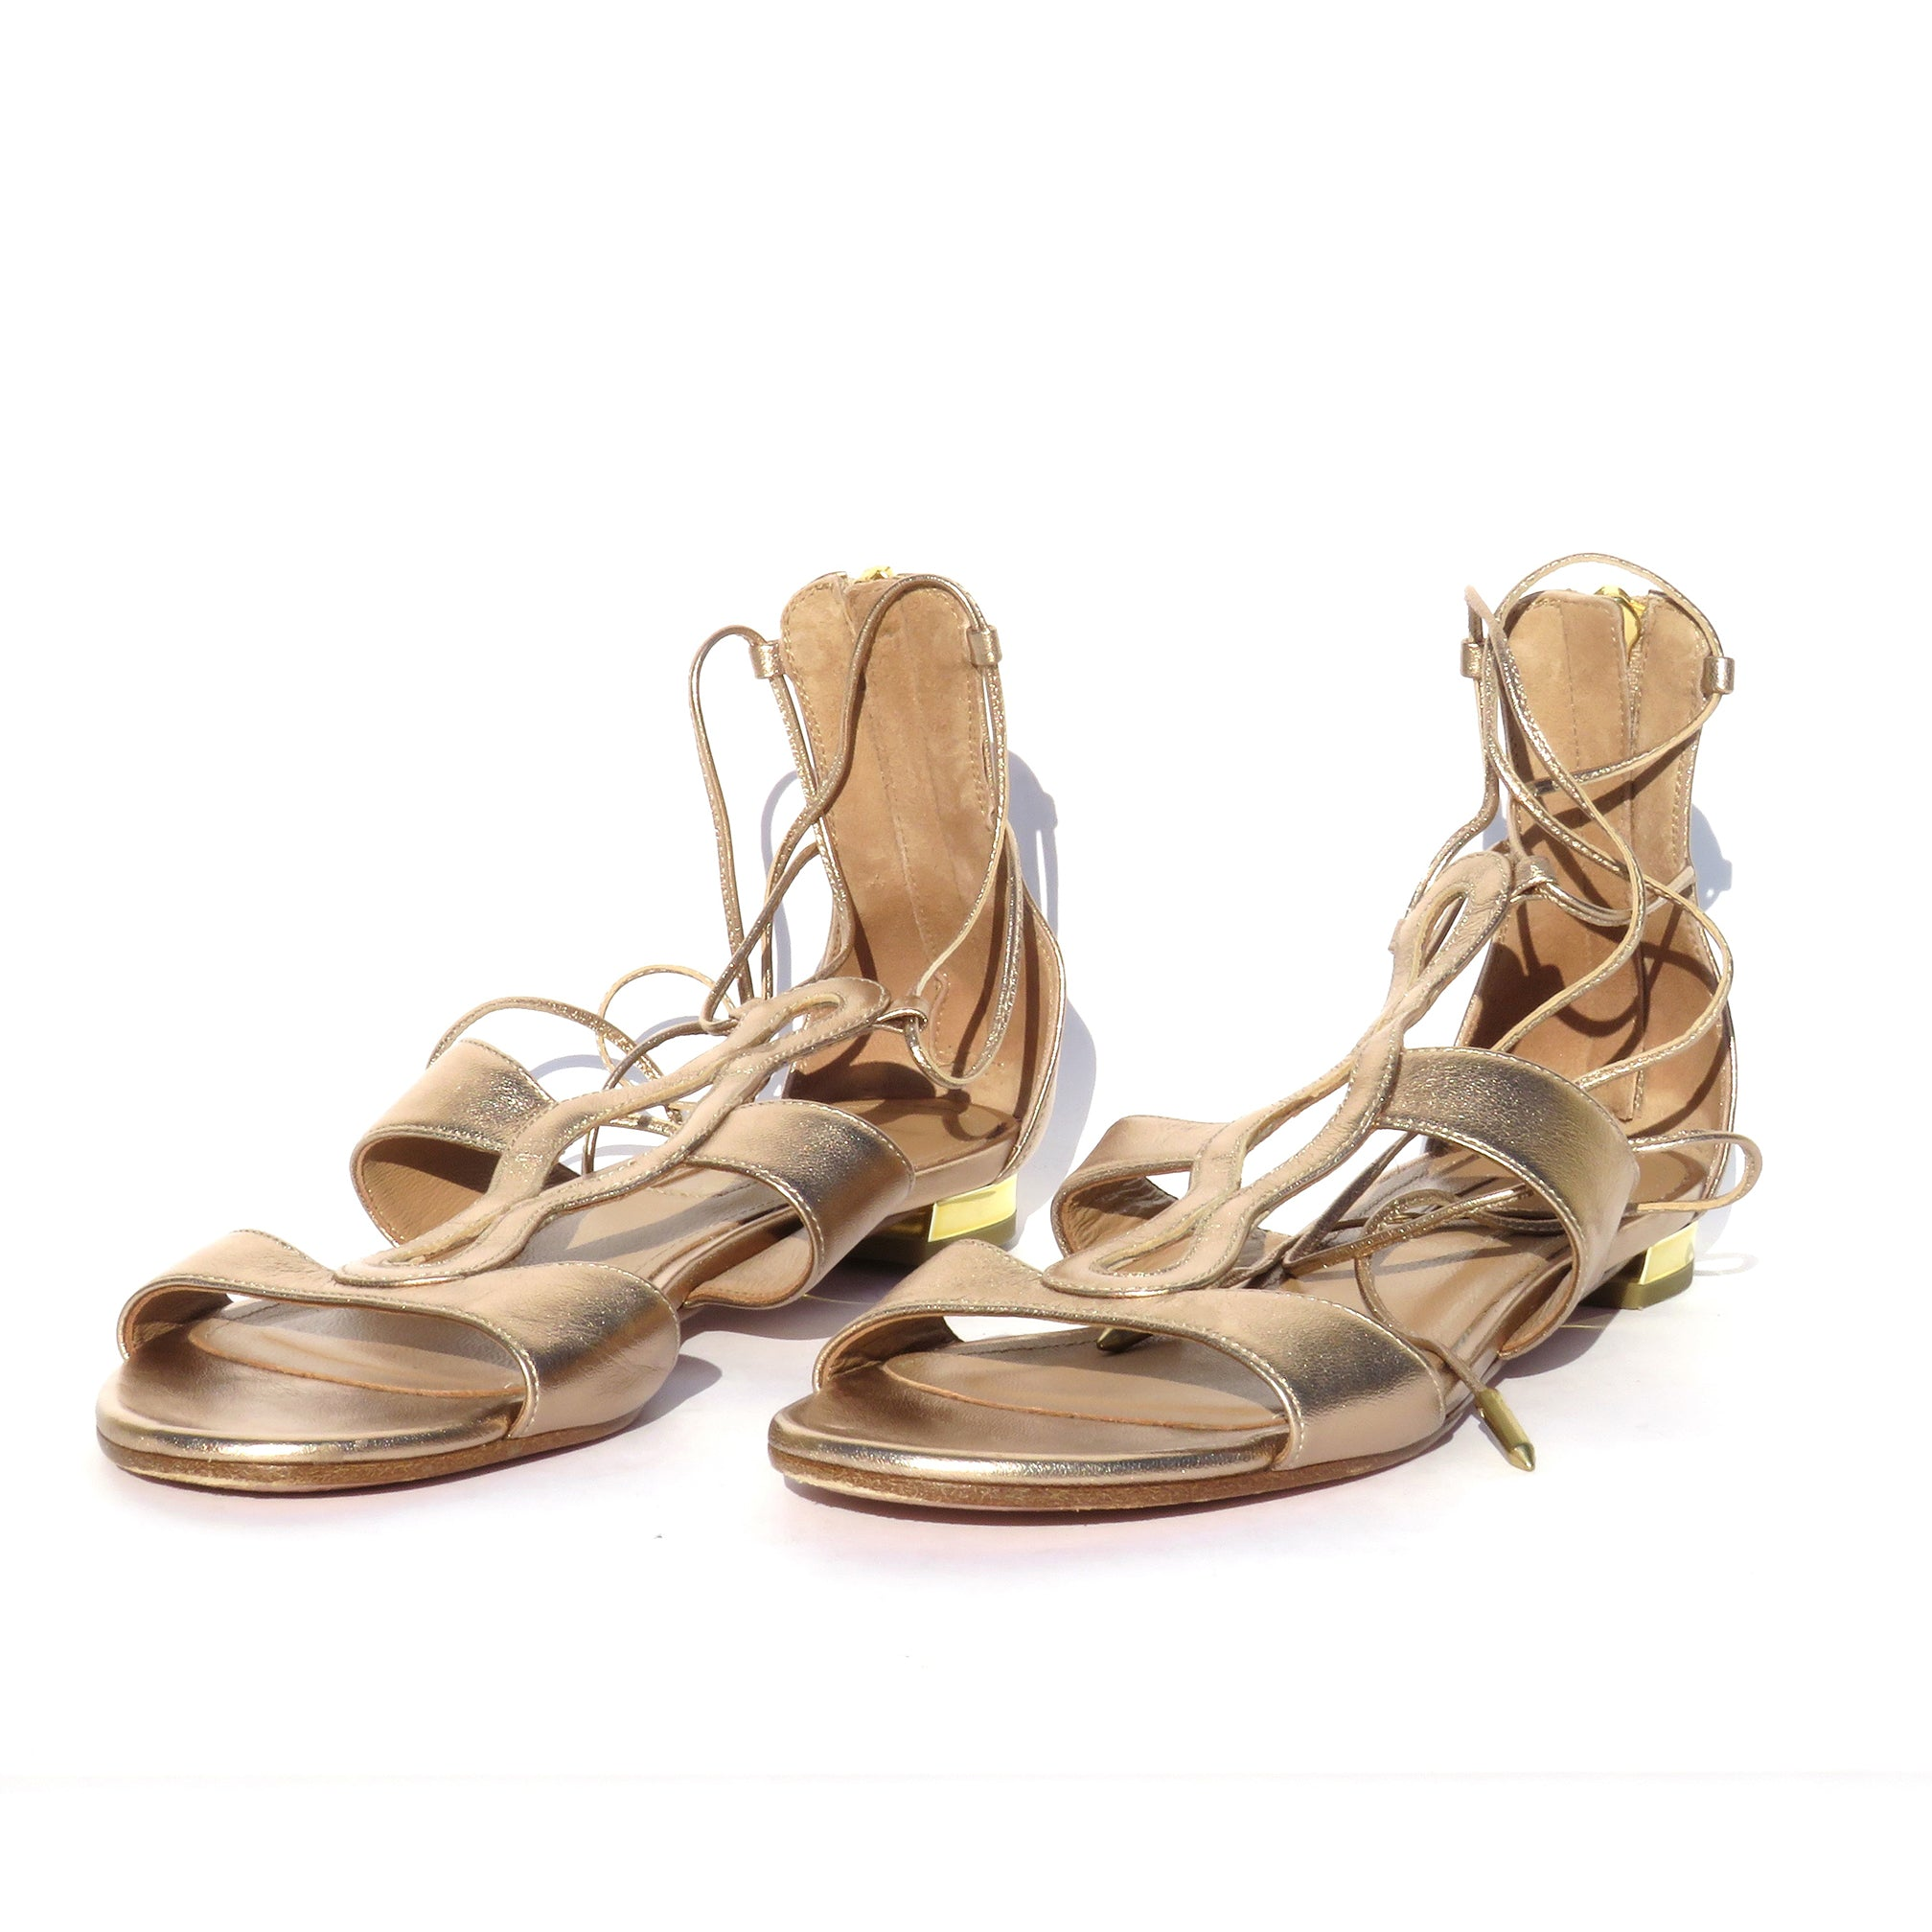 AQUAZZURA Metallic Gold Leather Flirt Lace Up Ankle Tie Flat Cage Sandals 36 GUC